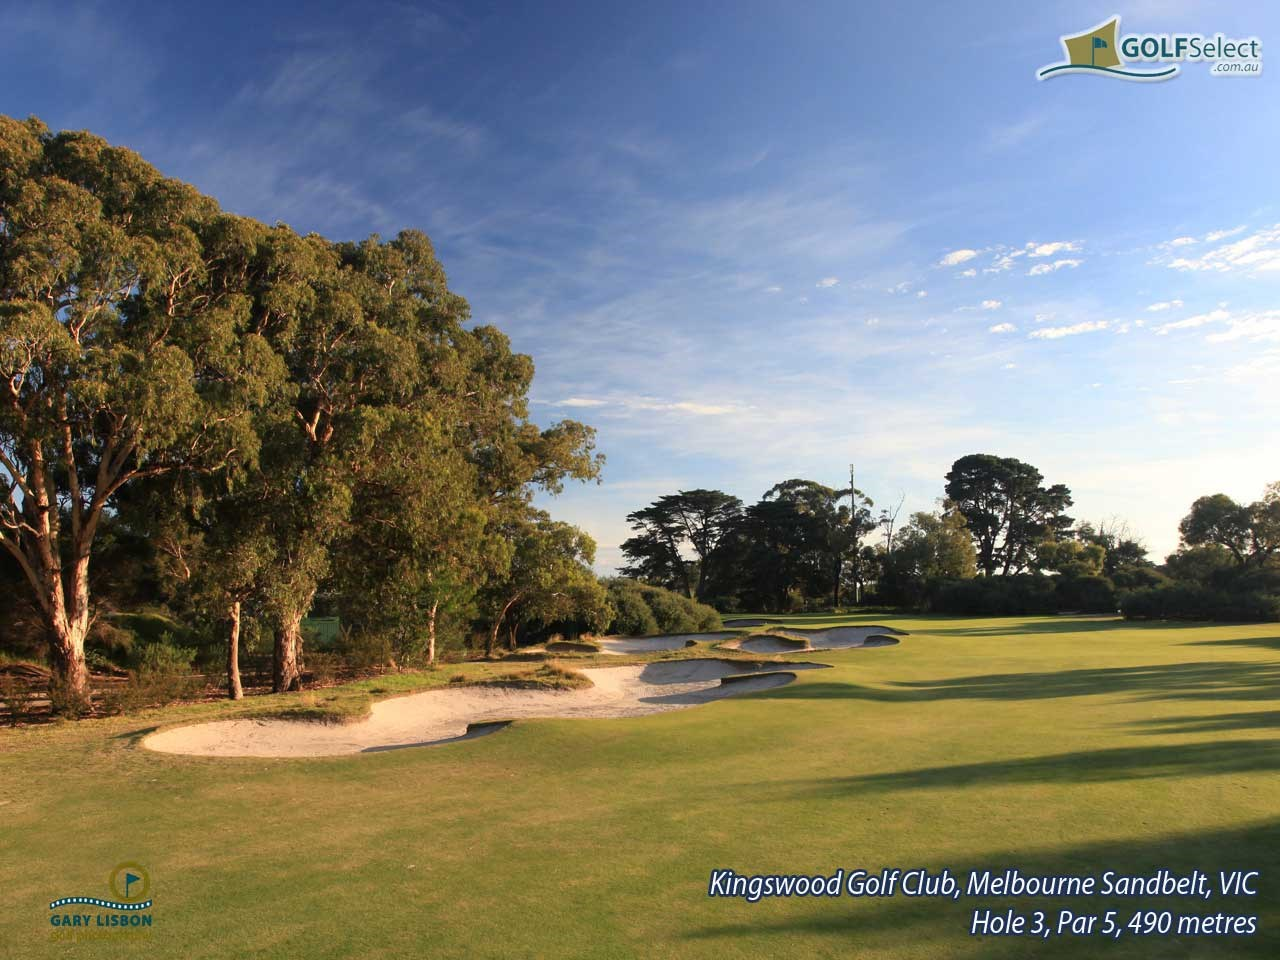 Kingswood Golf Club Hole 3, Par 5, 490 metres